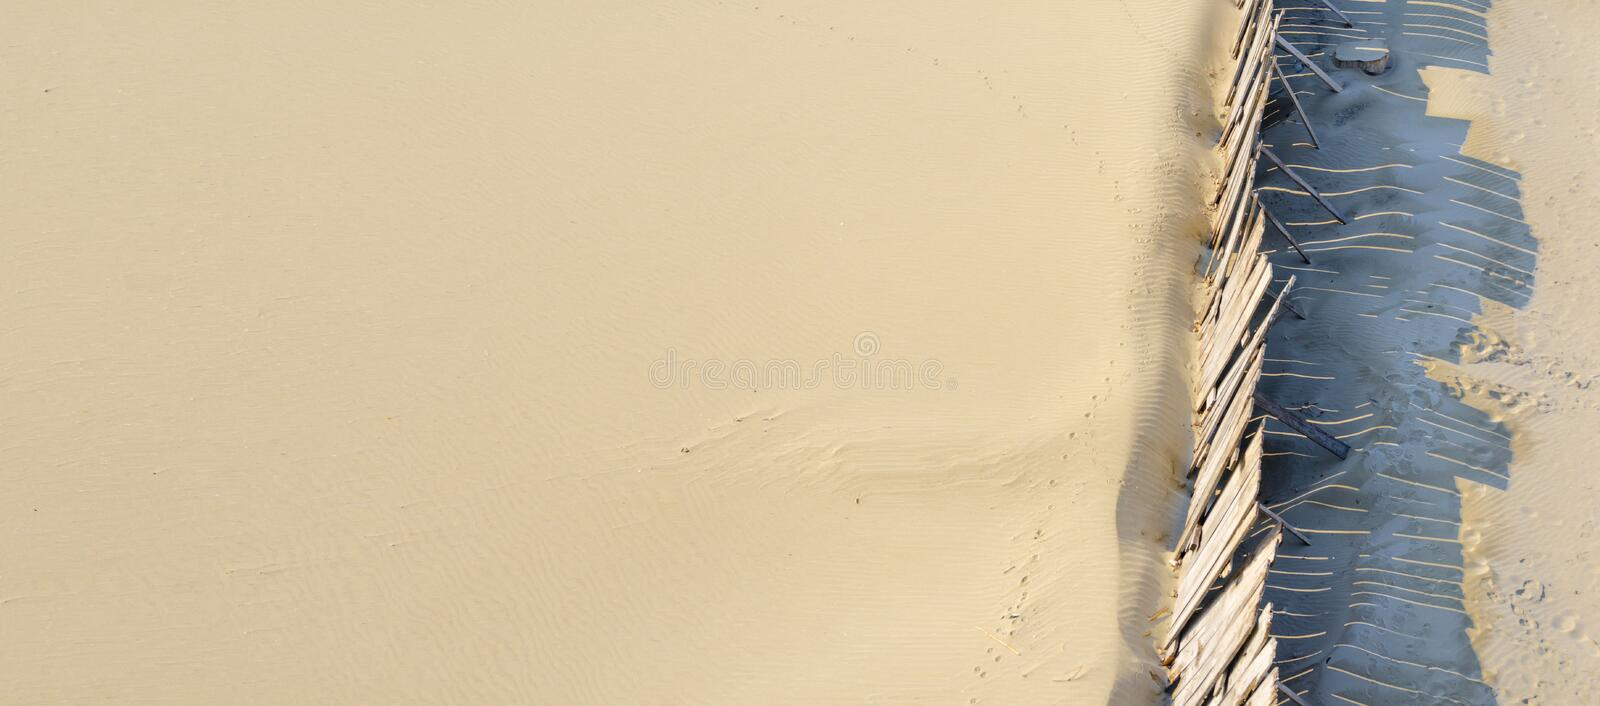 Beach sand protected from wind by wooden wall or barricade line, view from above stock photo